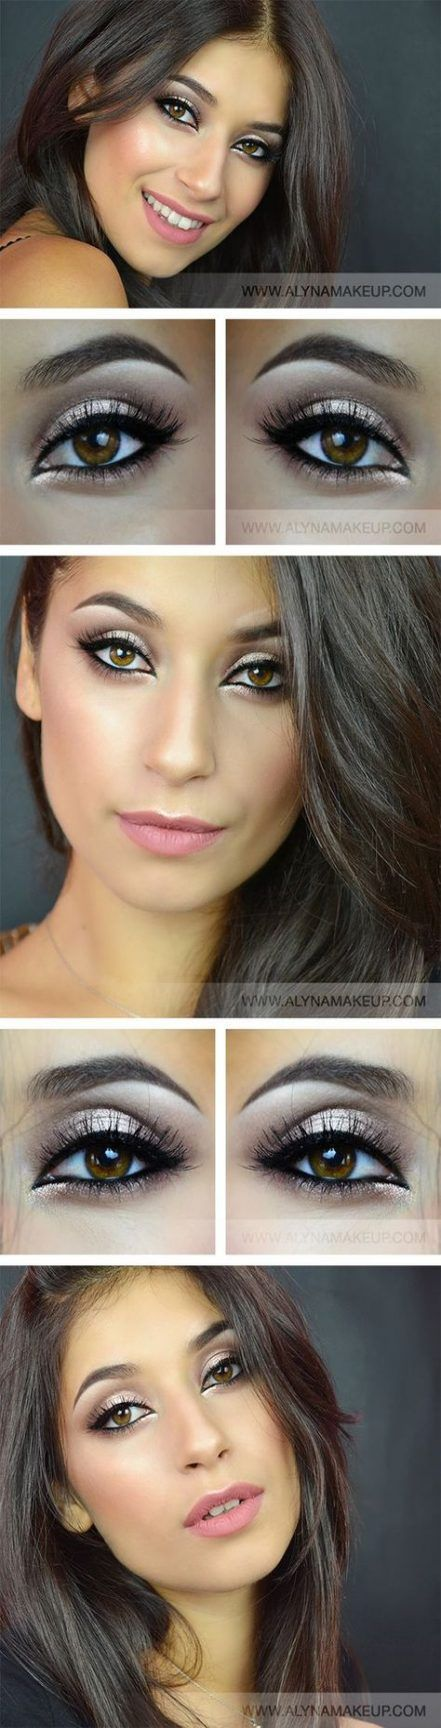 34 new Ideas for eye shadow for brown eyes urban decay